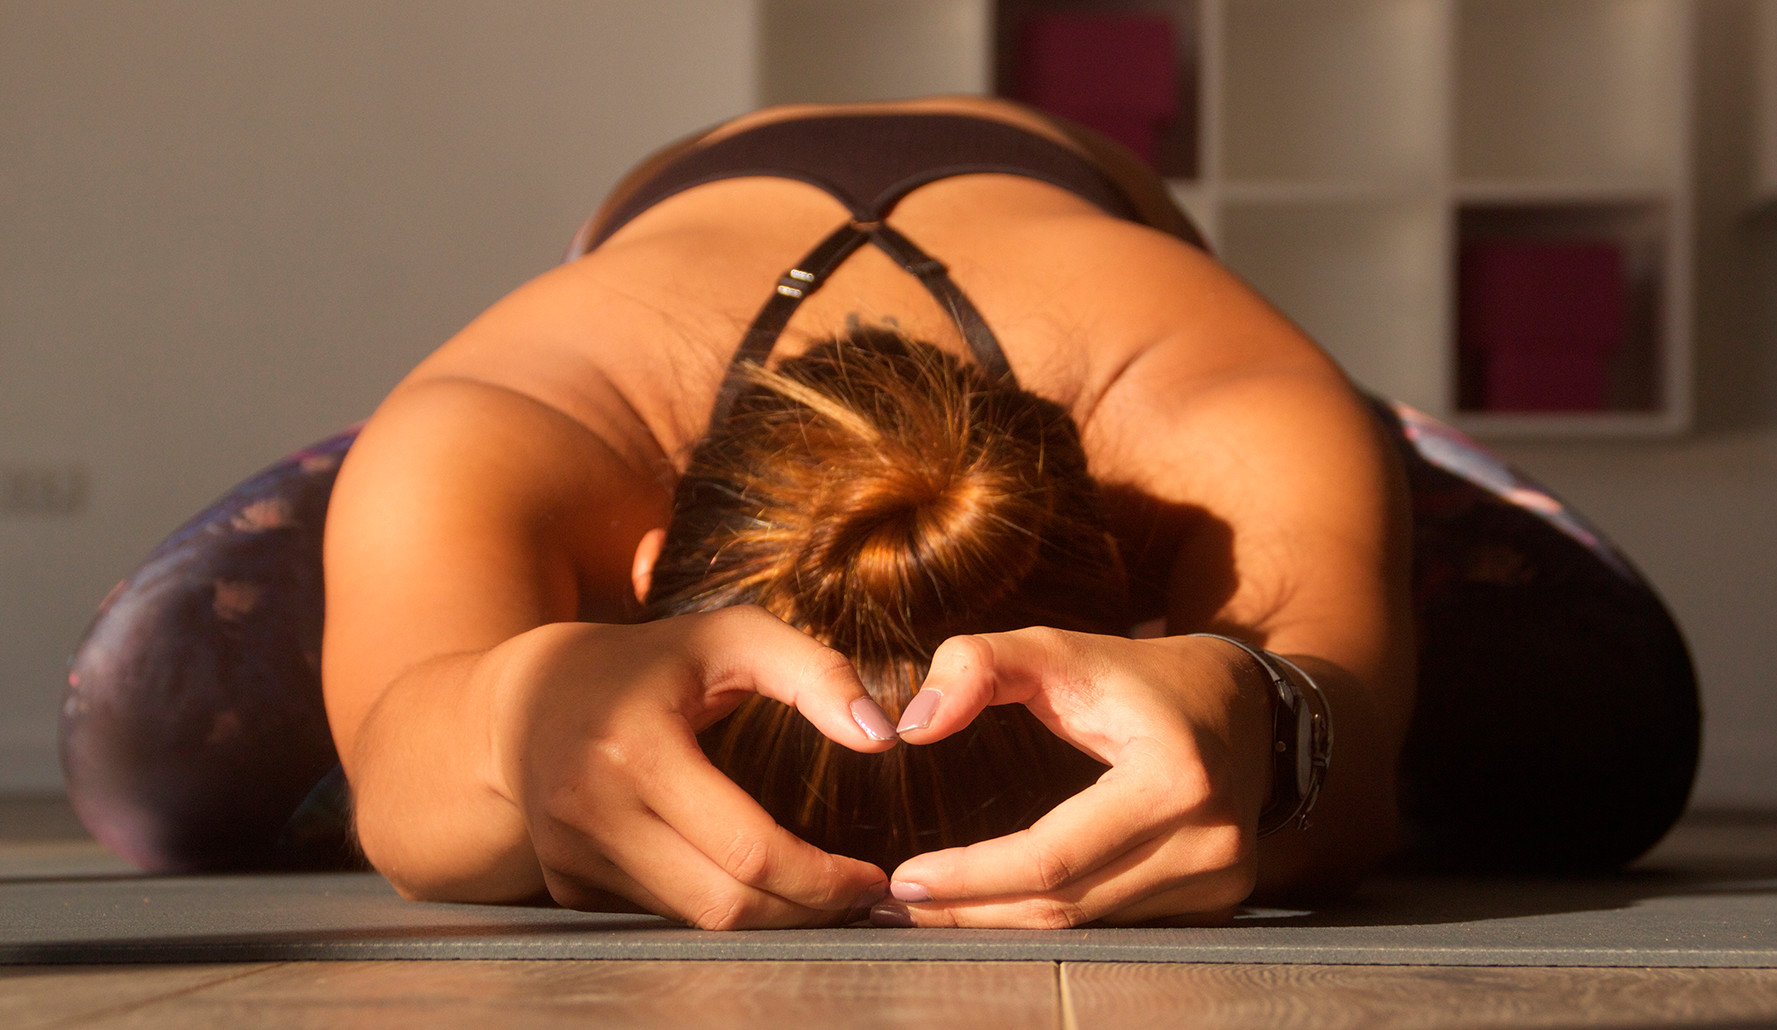 girl in yoga clothes doing a seated forward bend pose